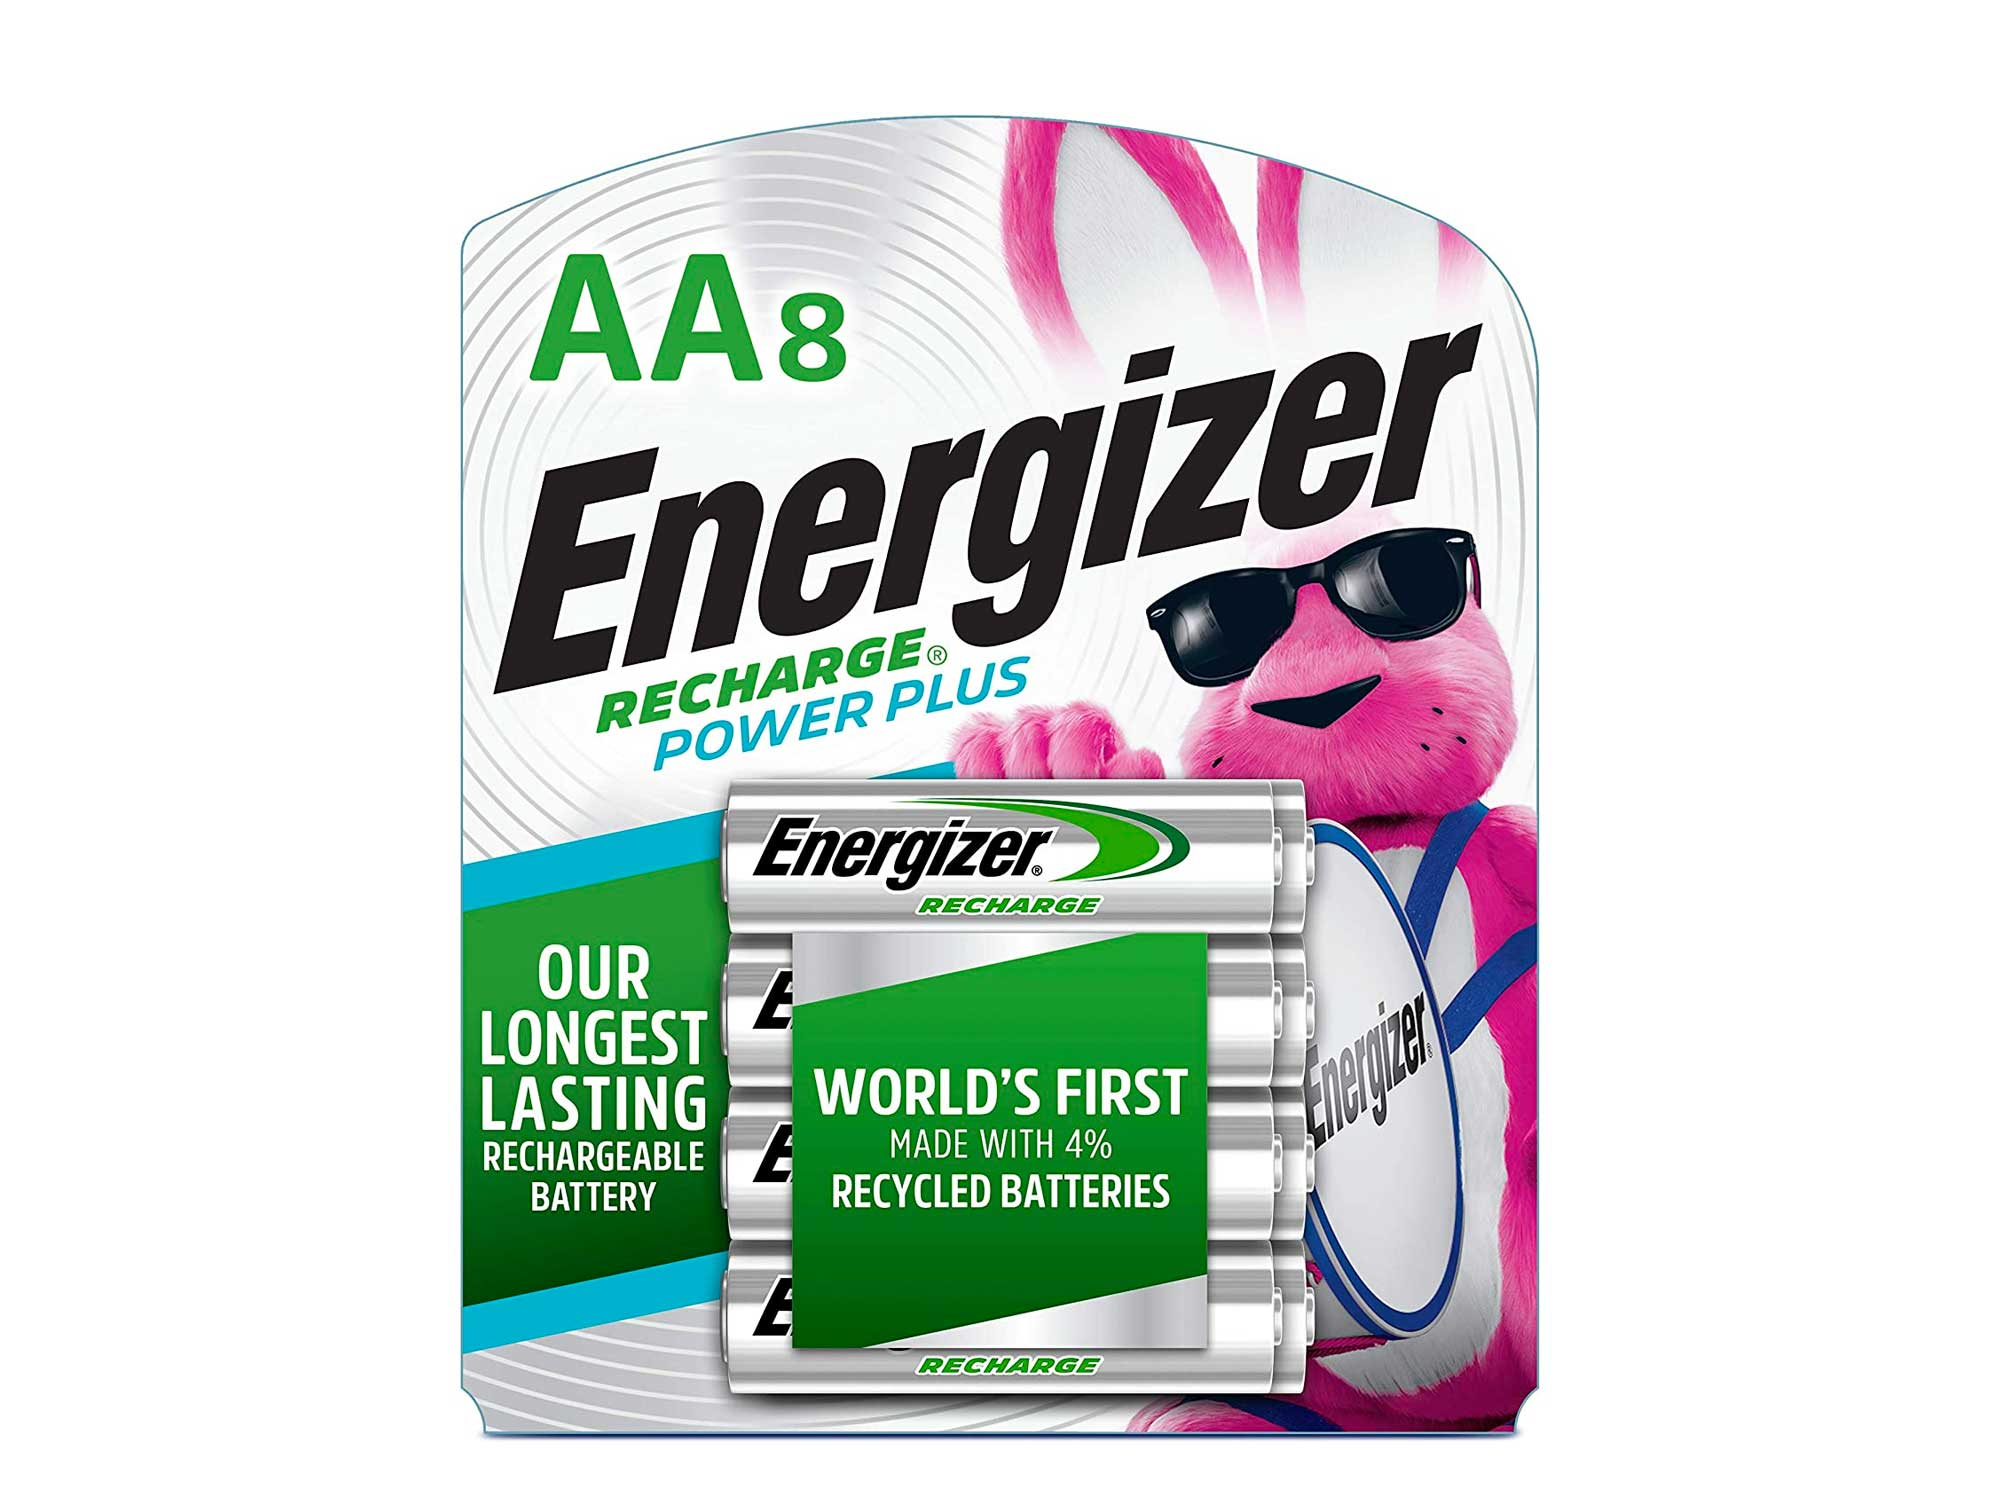 Energizer Rechargeable AA Batteries, 2300 mAh, Pre-Charged, 8 count (Recharge Power Plus)